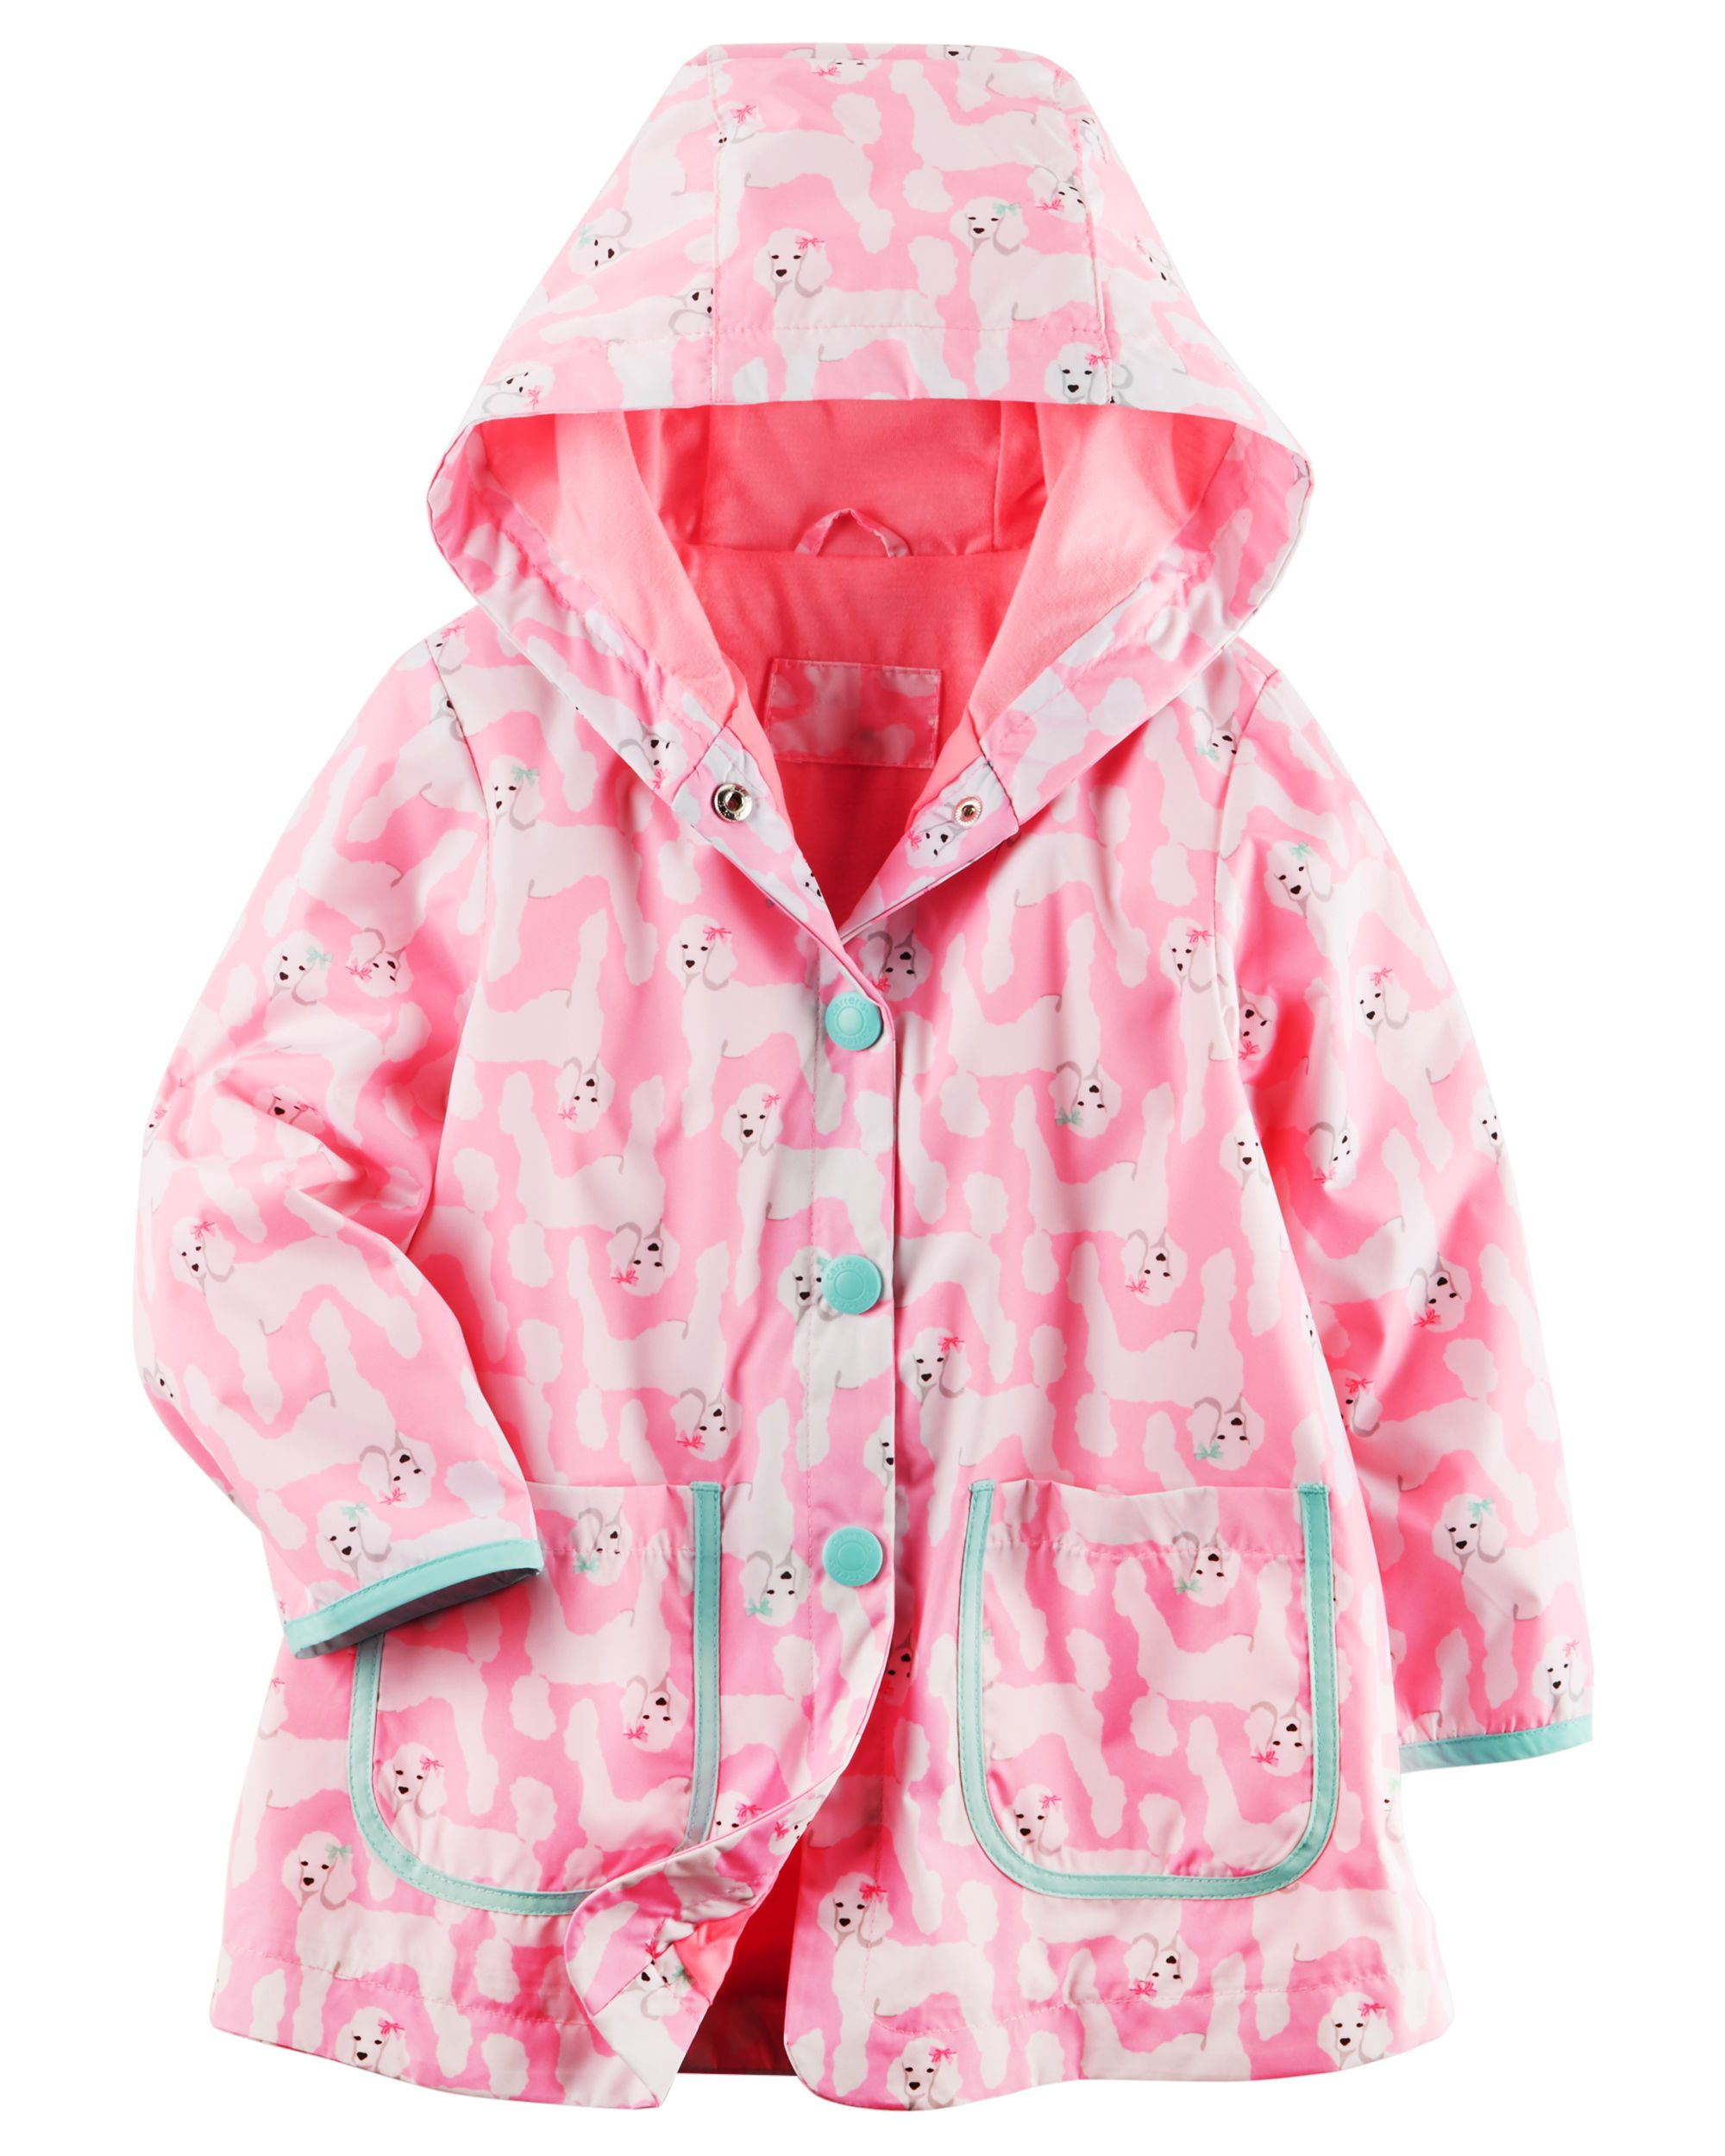 911c1b5bd7227 Poodle Raincoat | Children's Clothes | Baby girl jackets, Carters ...